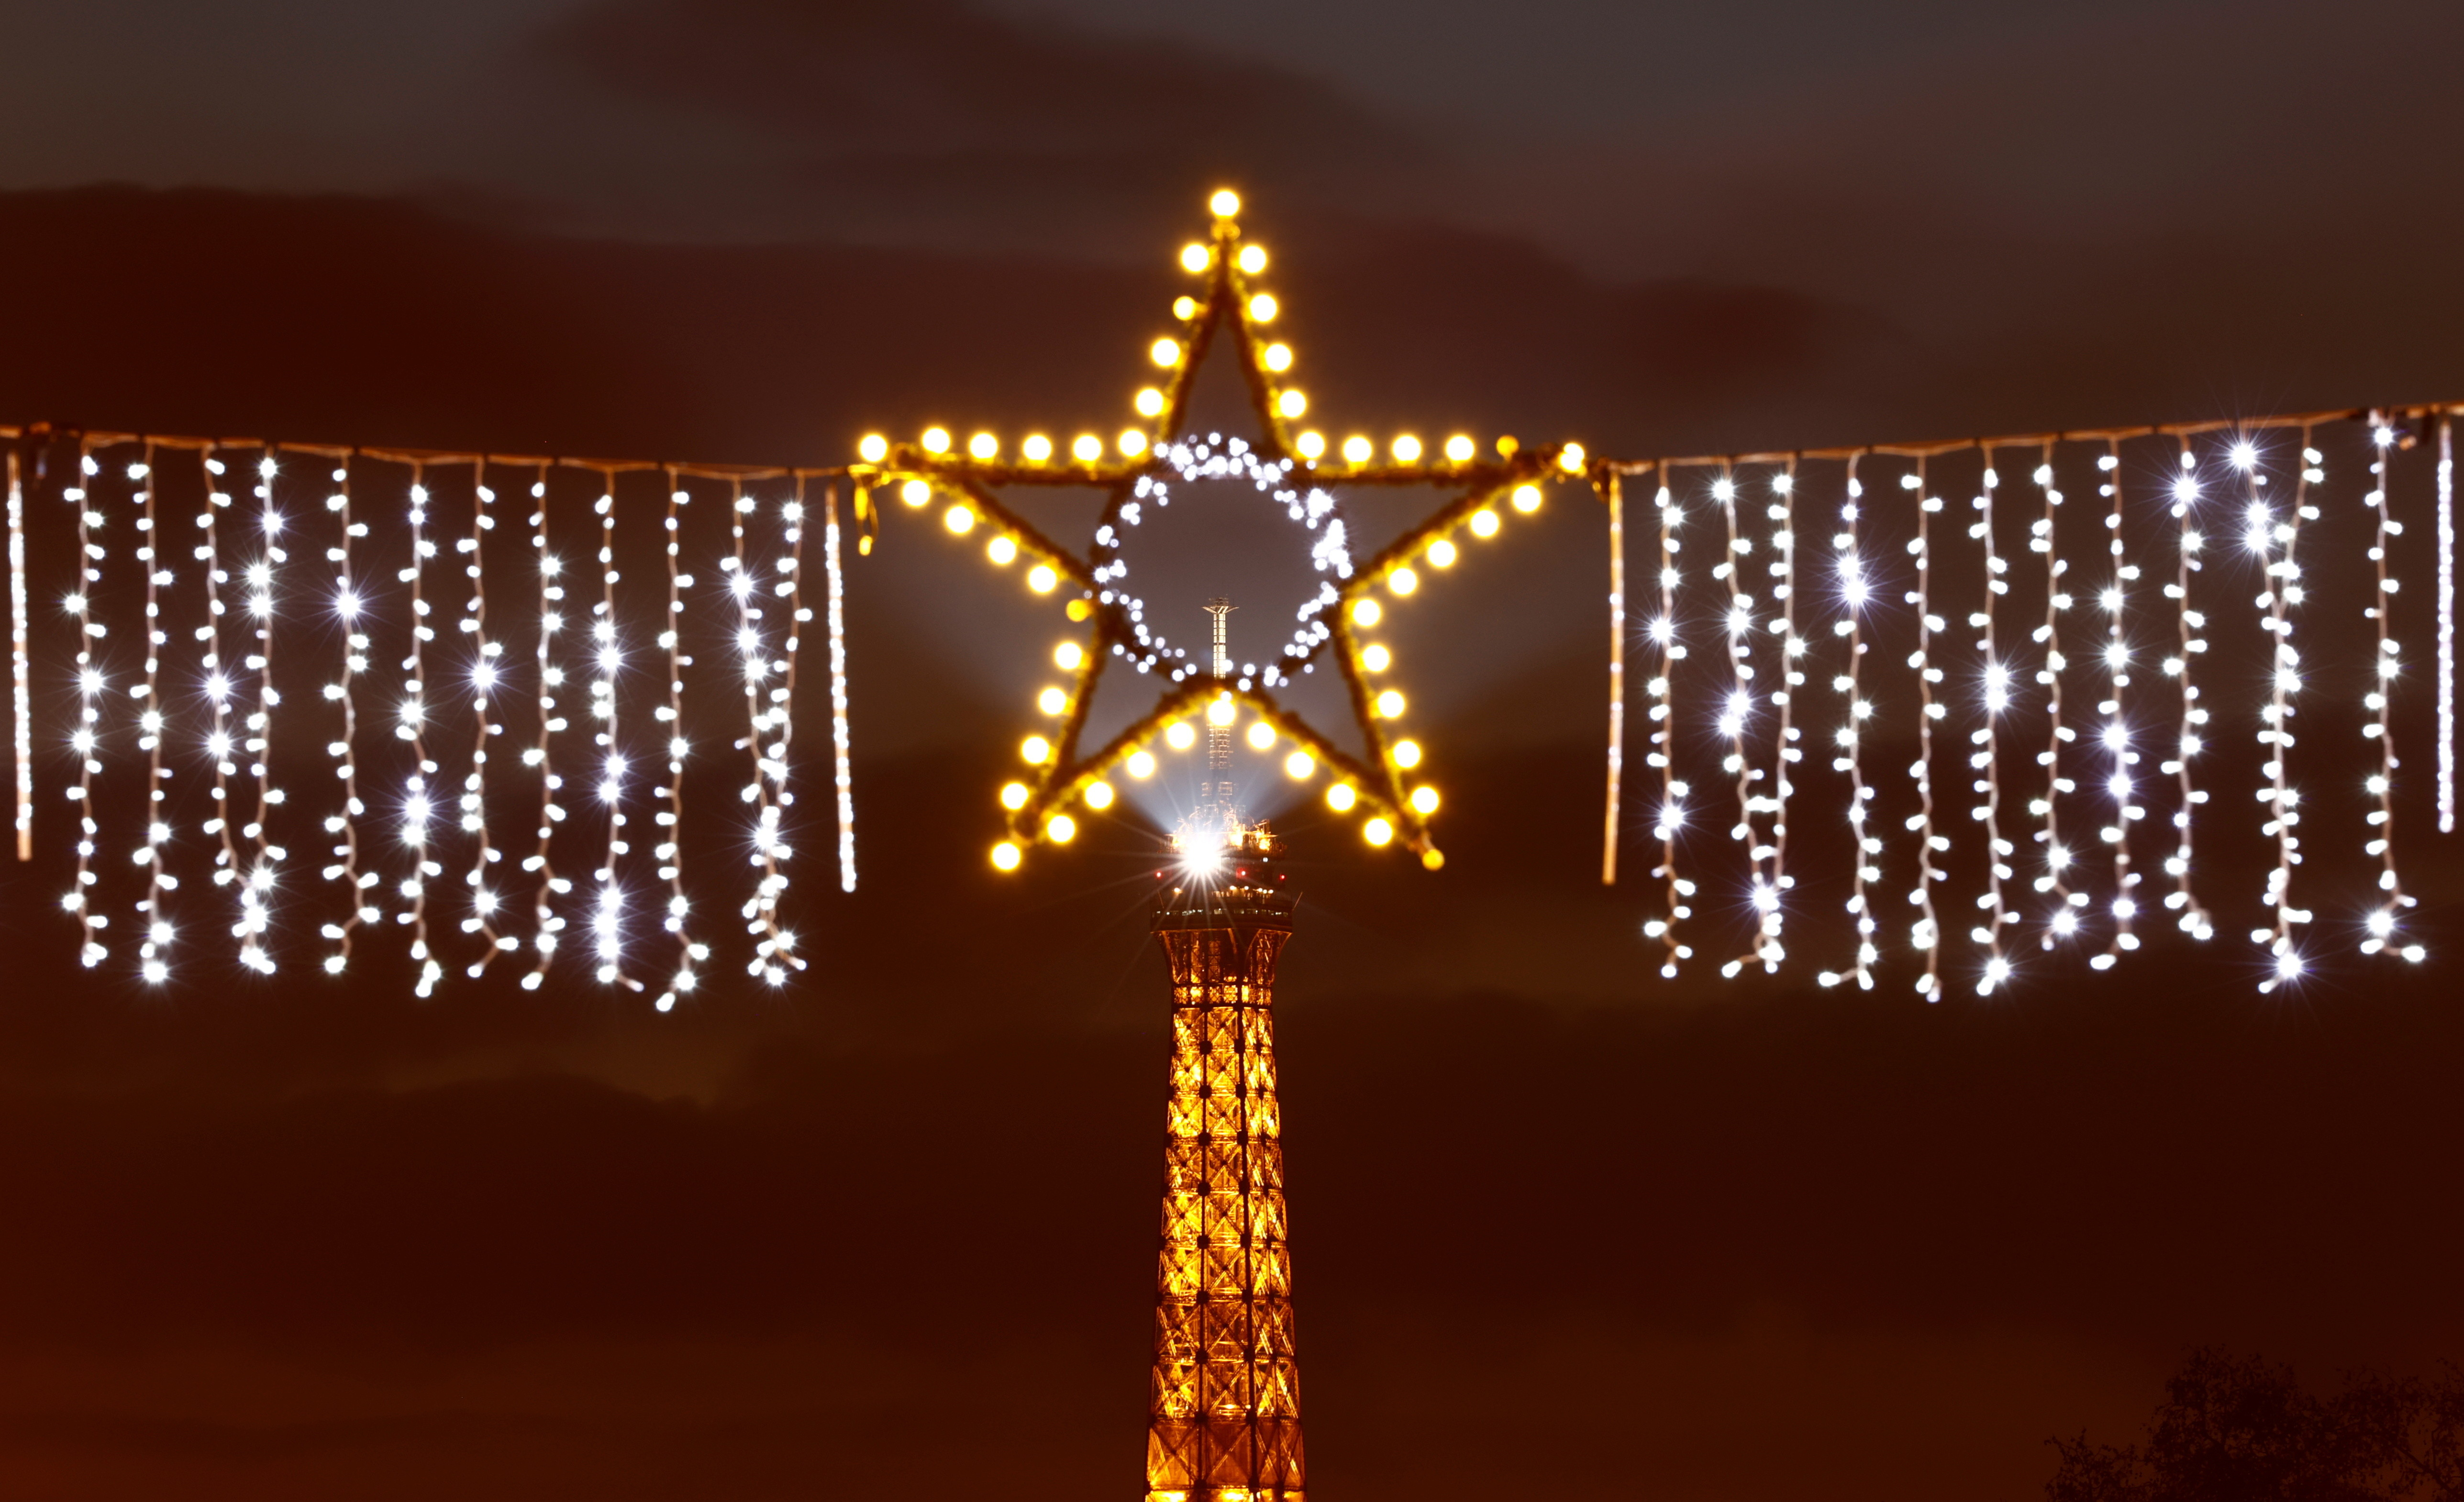 An illuminated star, part of year-end decorations, shines in a Paris street with the Eiffel Tower in the background, France, January 1, 2021. REUTERS/Christian Hartmann - RC25ZK9V0YKI